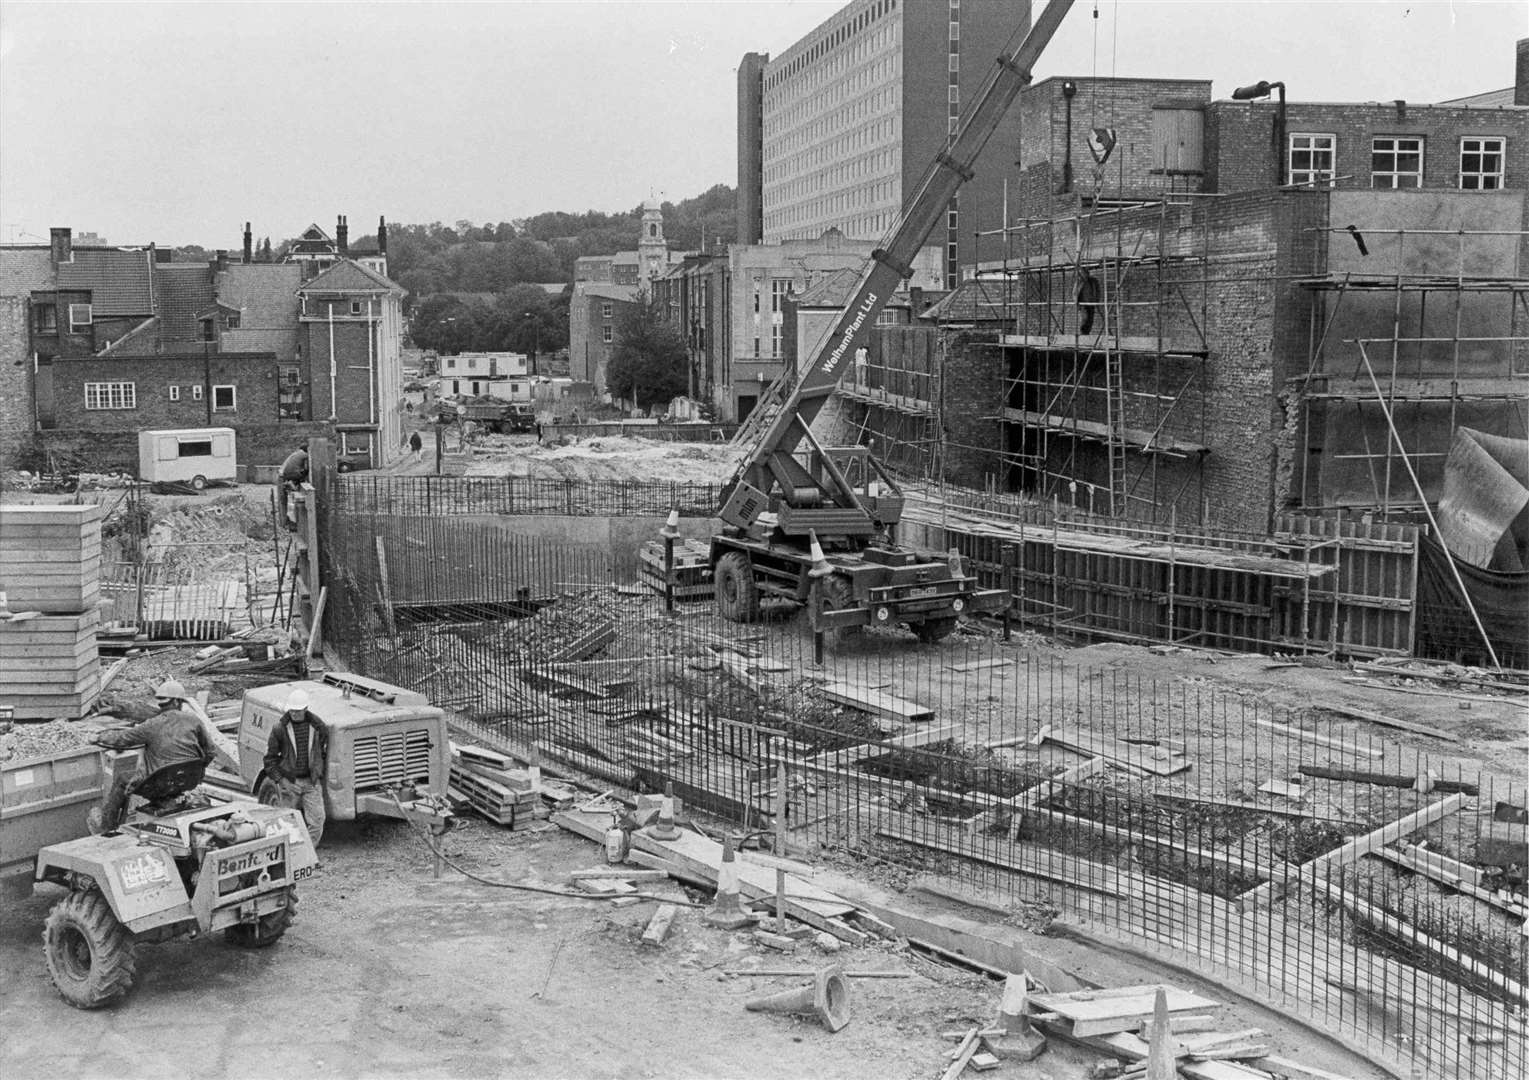 The building of the Sir John Hawkins flyover in 1987 which was part of the Chatham ring road aimed at easing traffic congestion in the town. Picture from the book 'Images of Medway'